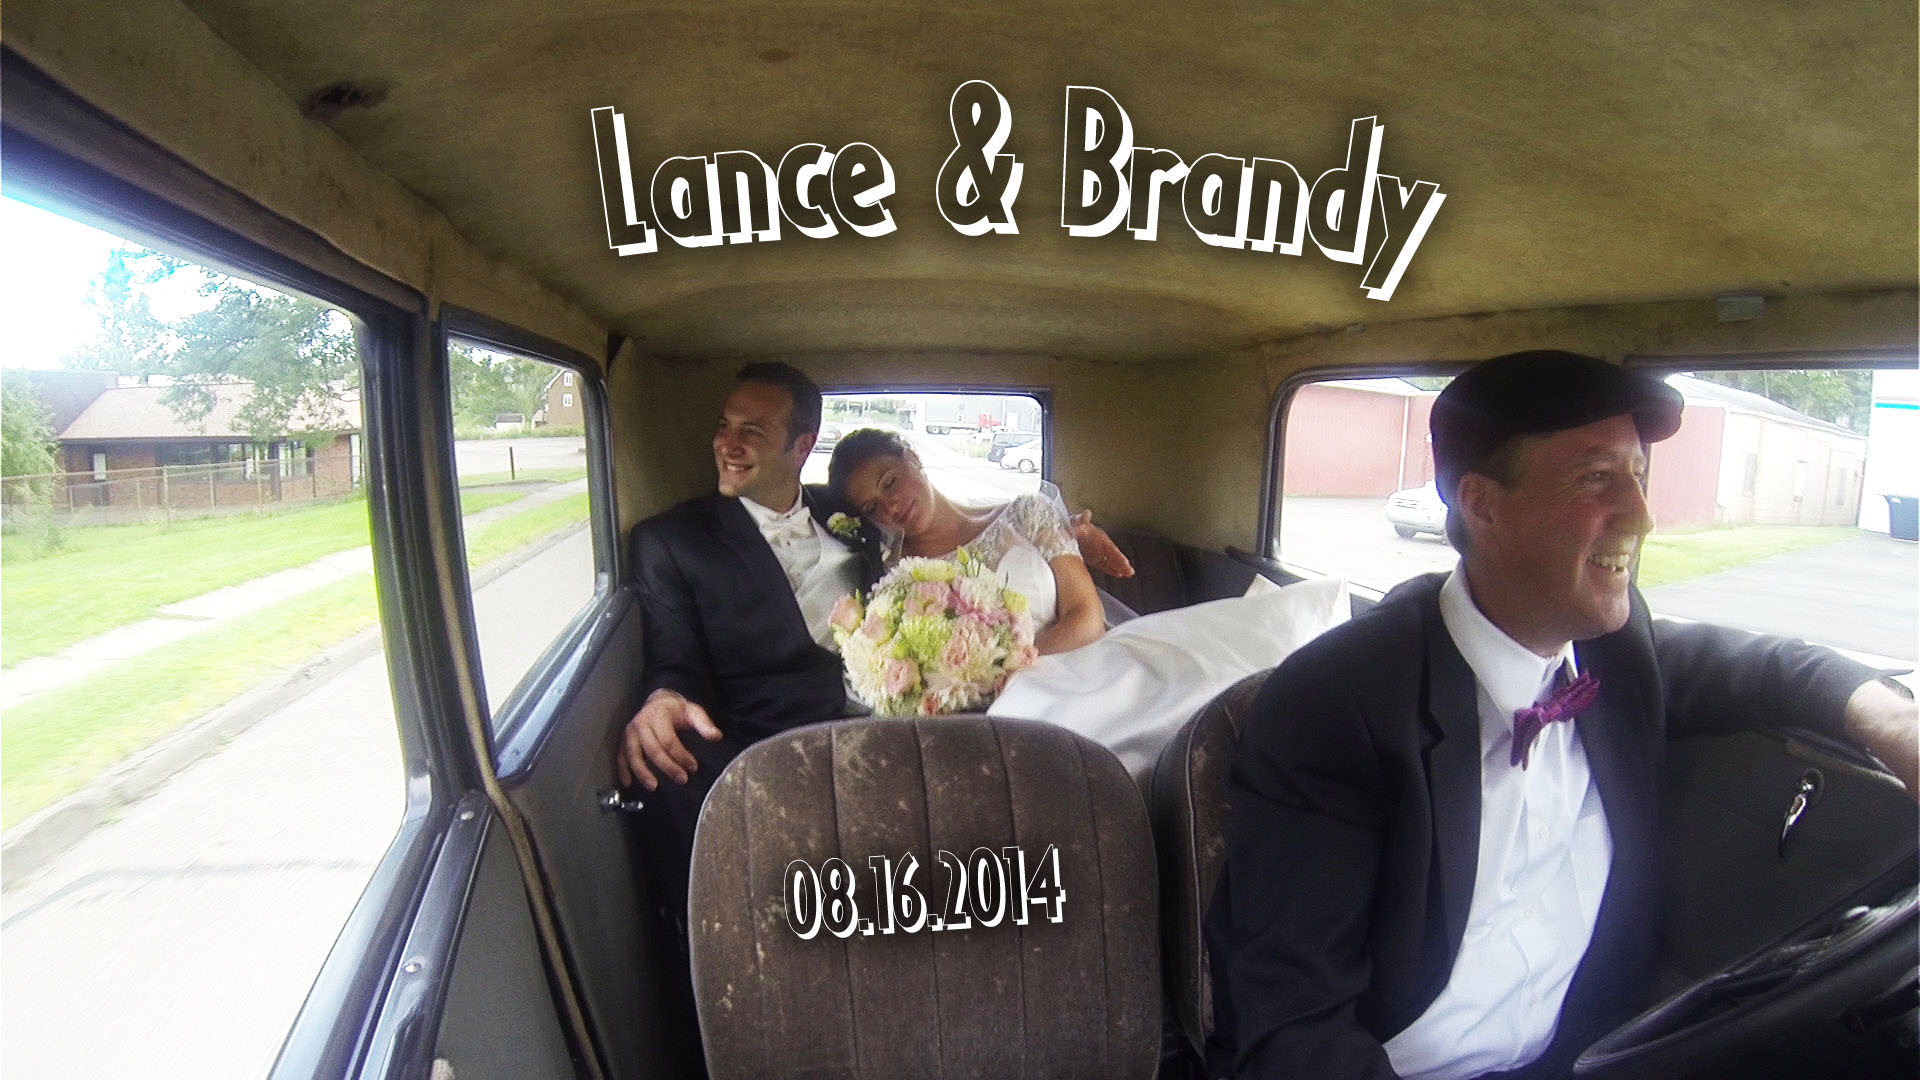 Lance & Brandy – Kane, PA Wedding Video